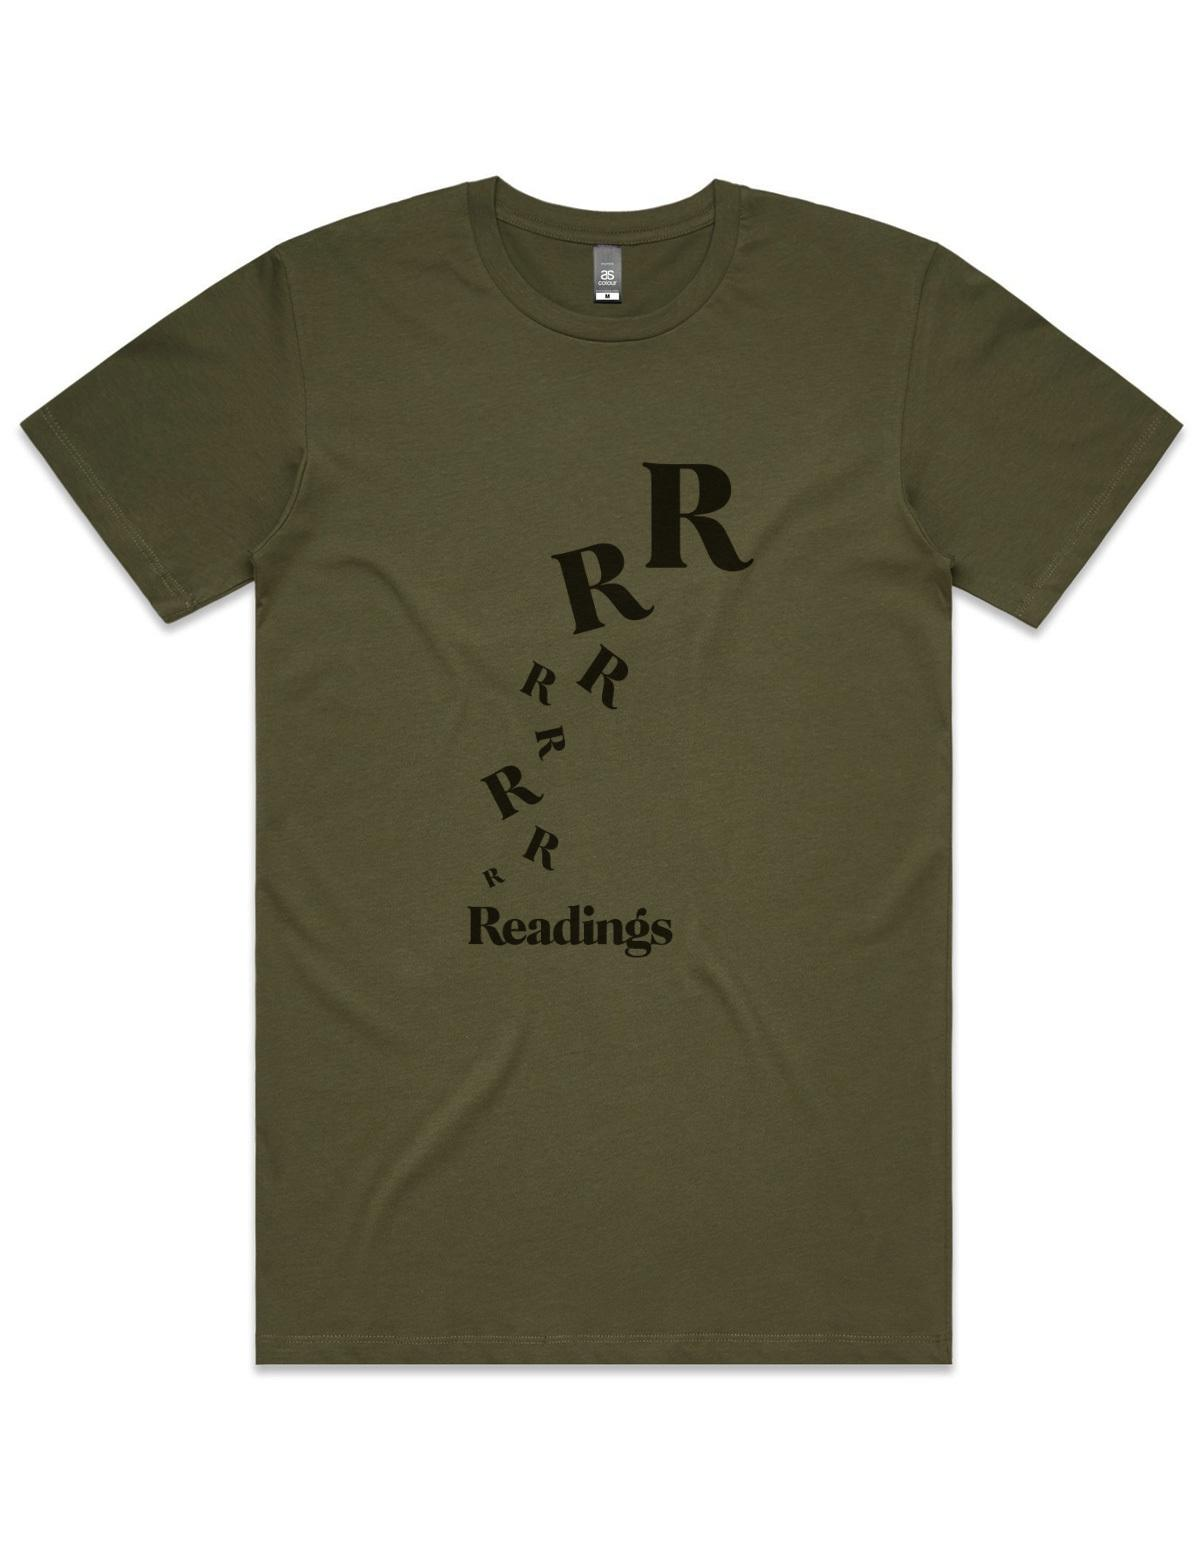 Flying Rs T-Shirt Army Green (Medium, Unisex)